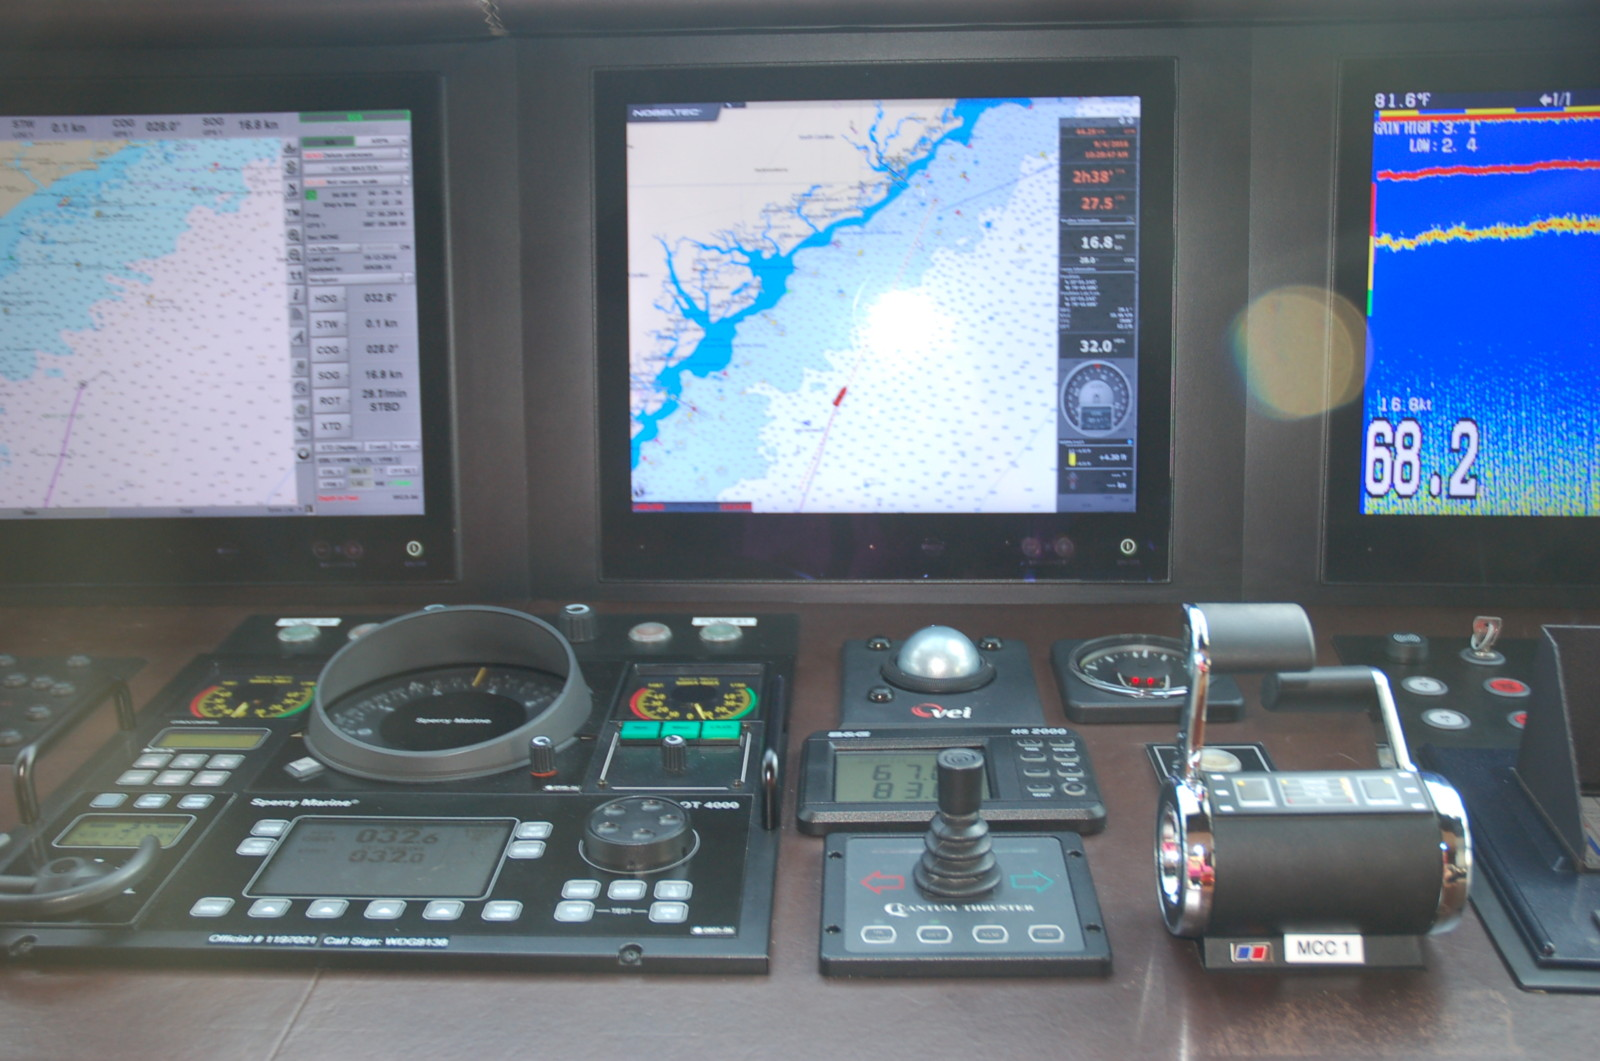 All Systems Go: ETOs are master troubleshooters onboard | The Triton